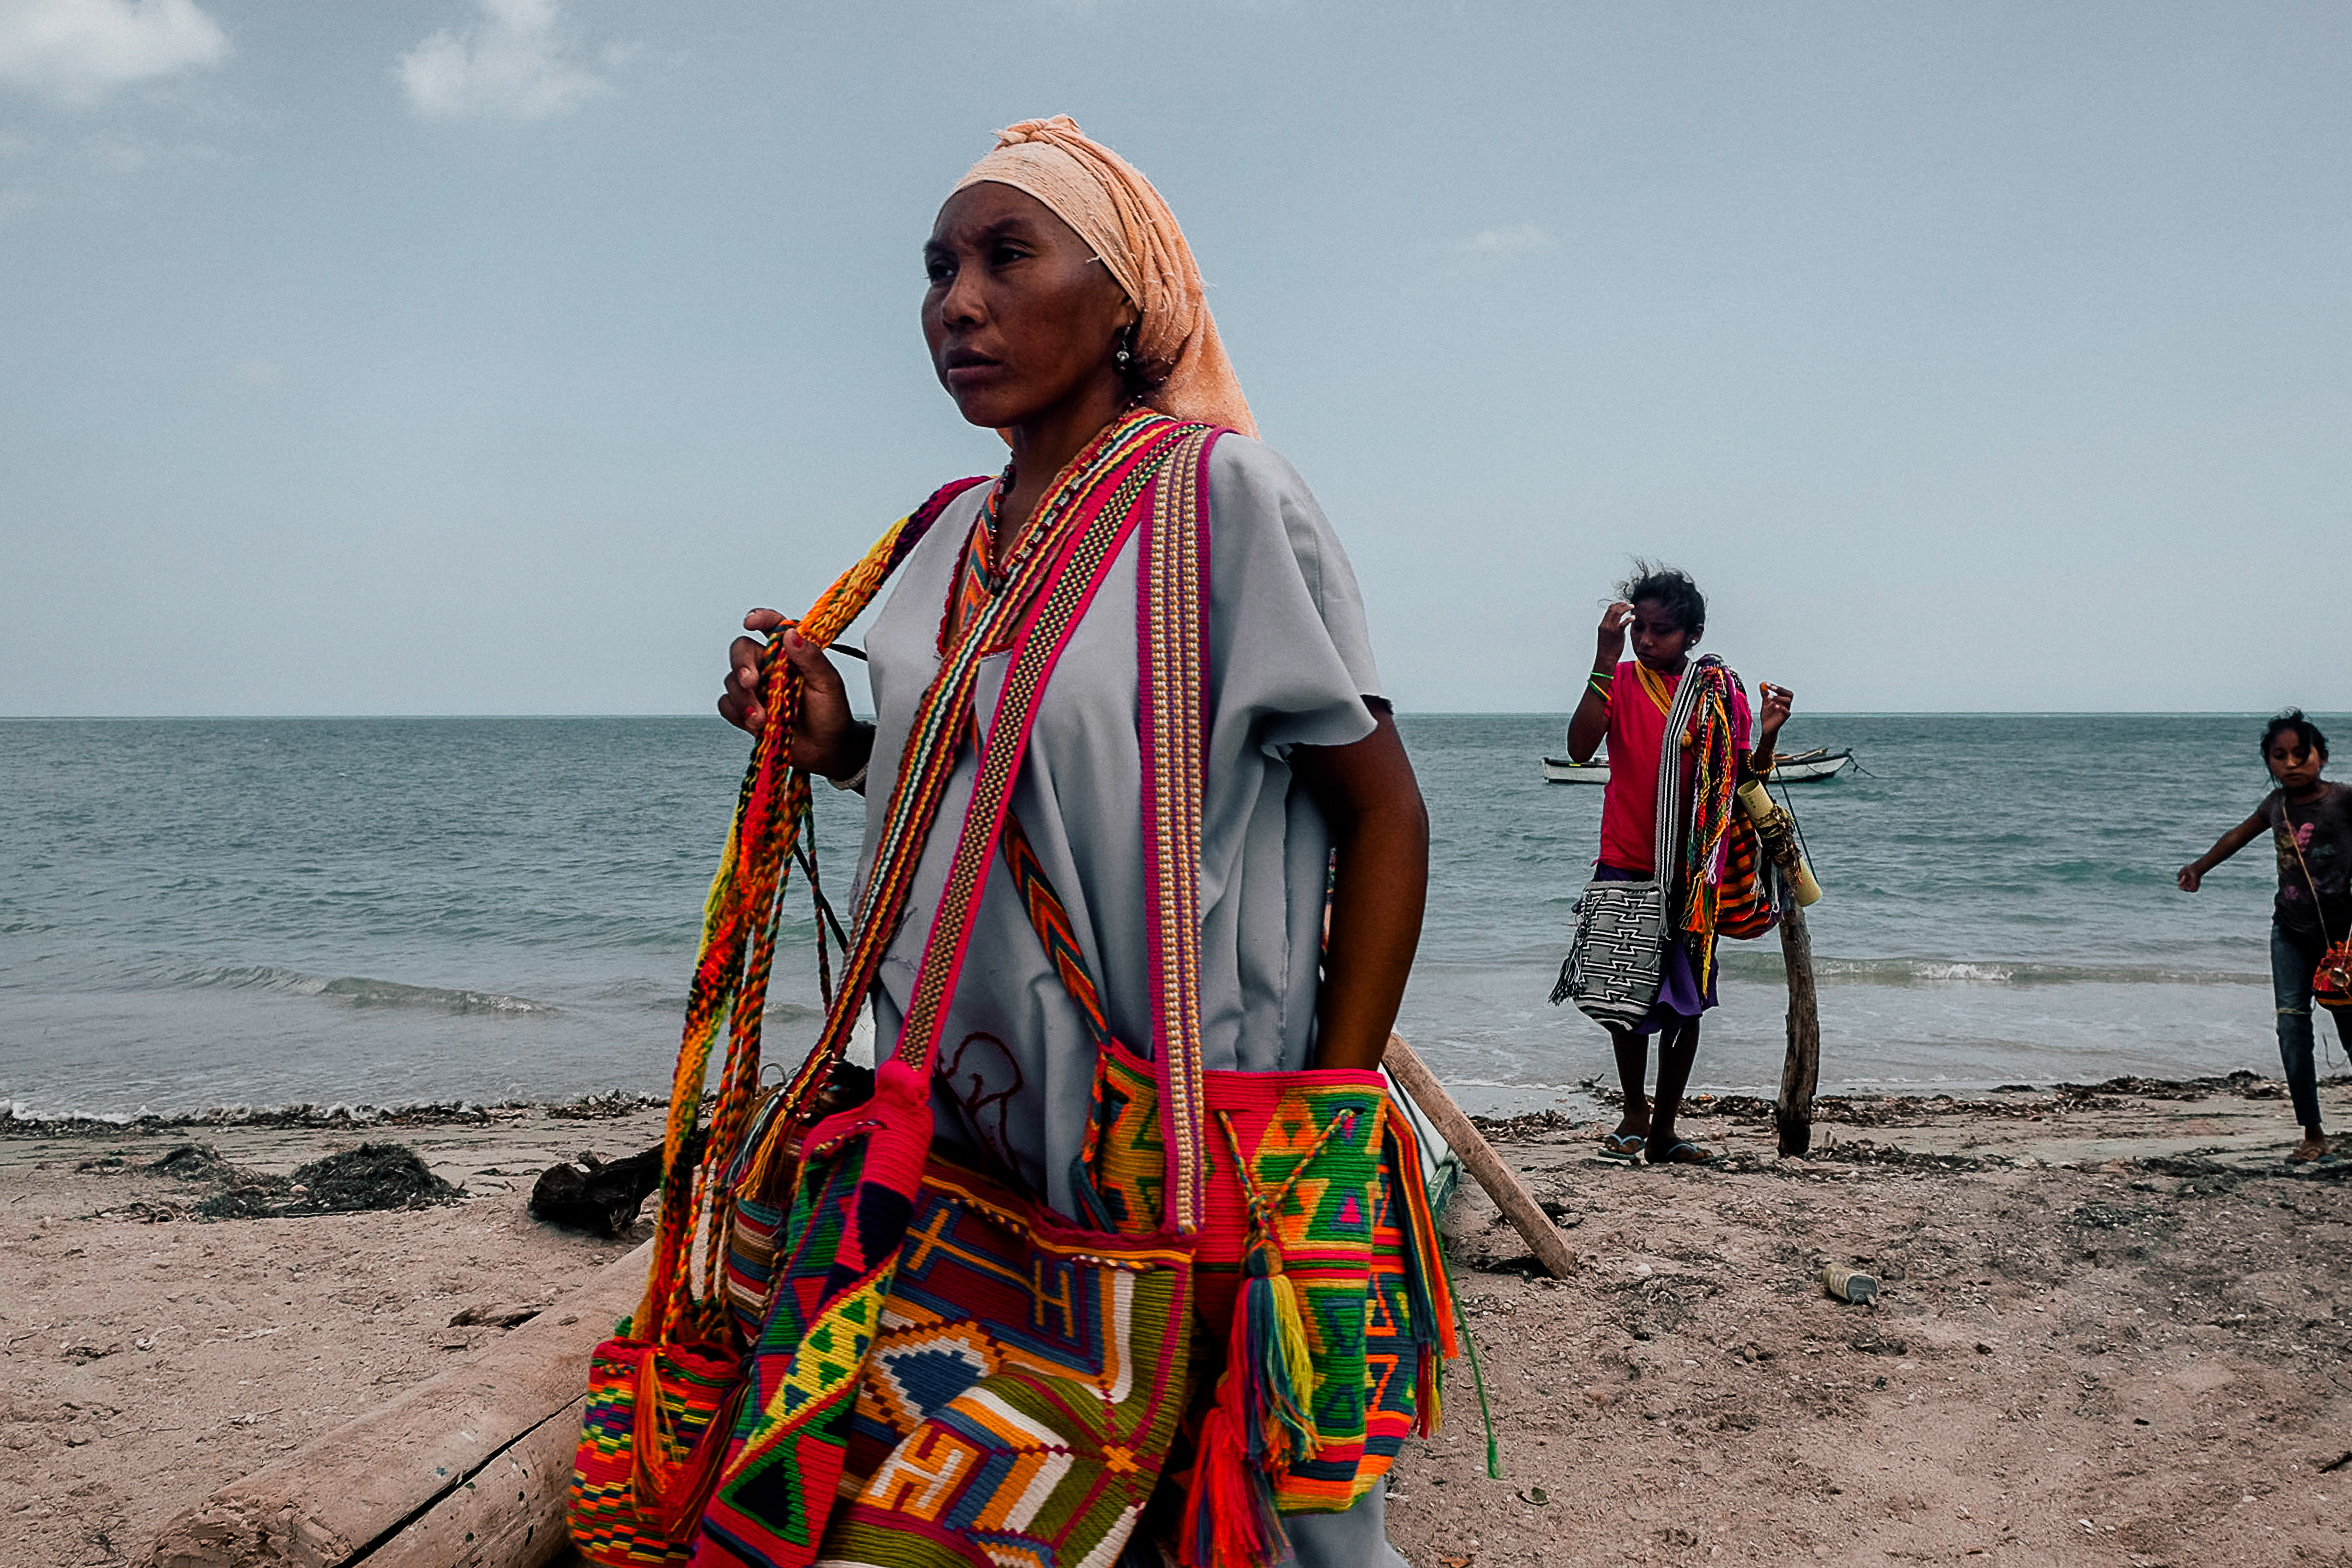 Merchants selling handmade patterned bags on the coast in Riohacha.